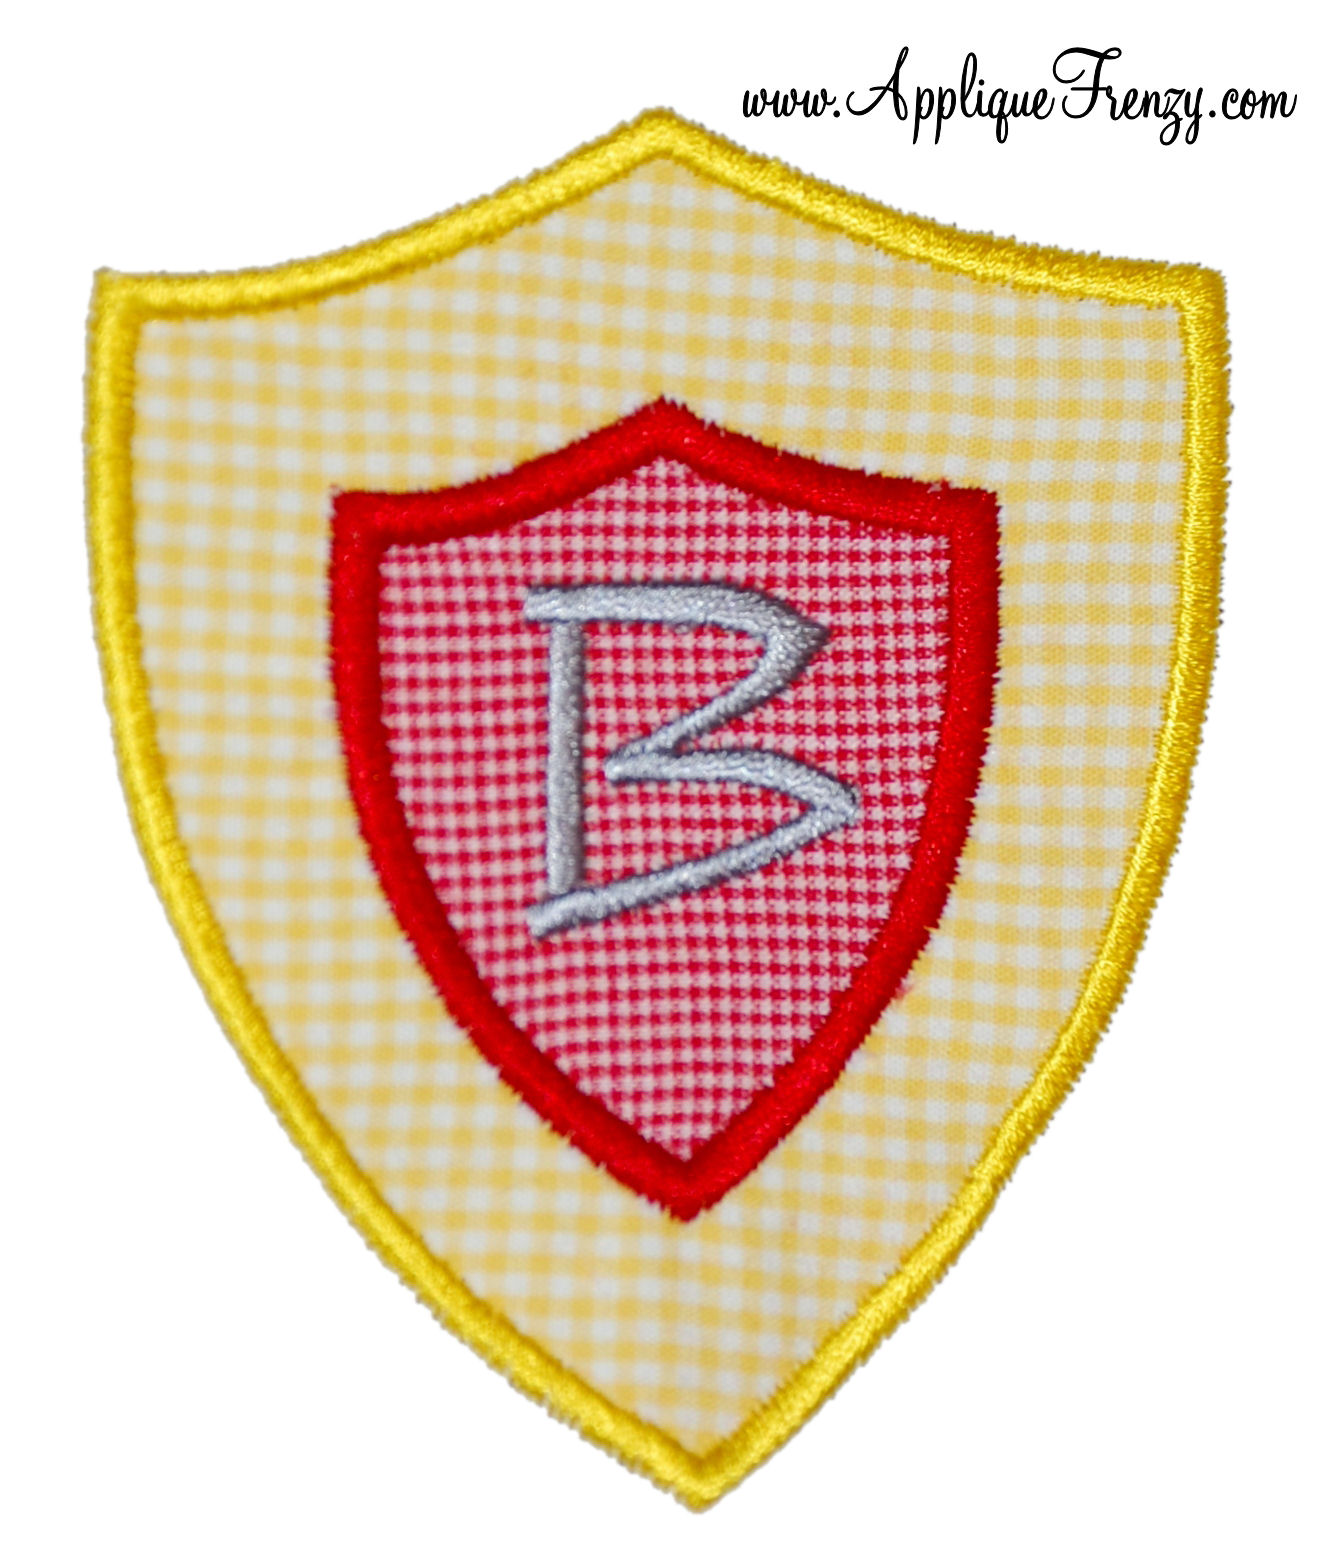 Knight Shield Applique Design